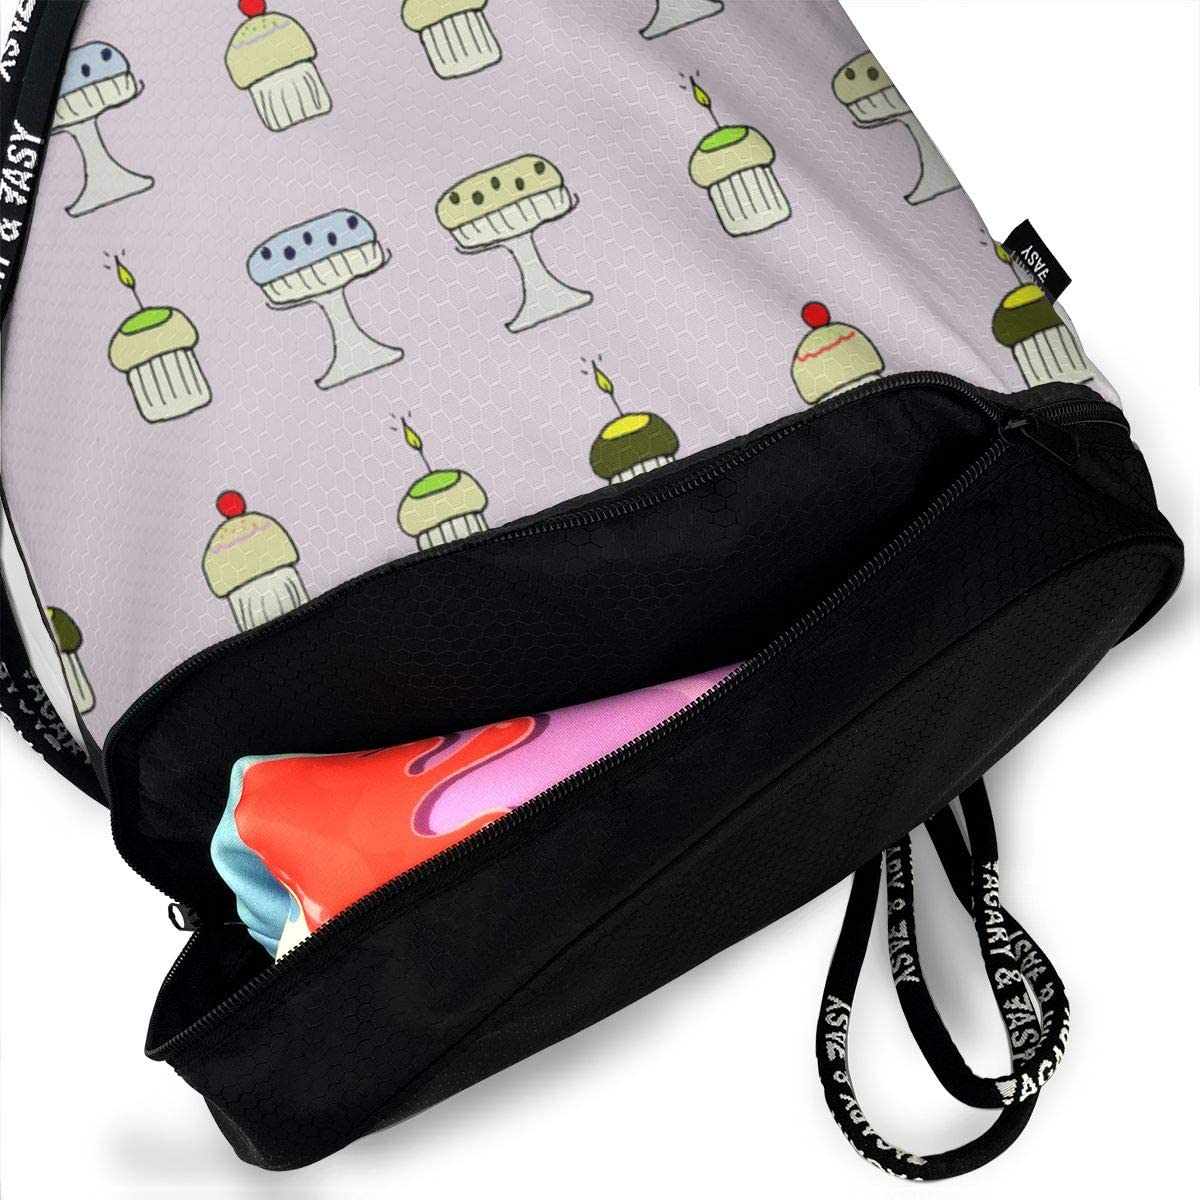 New Cakes Drawstring Backpack Sports Athletic Gym Cinch Sack String Storage Bags for Hiking Travel Beach